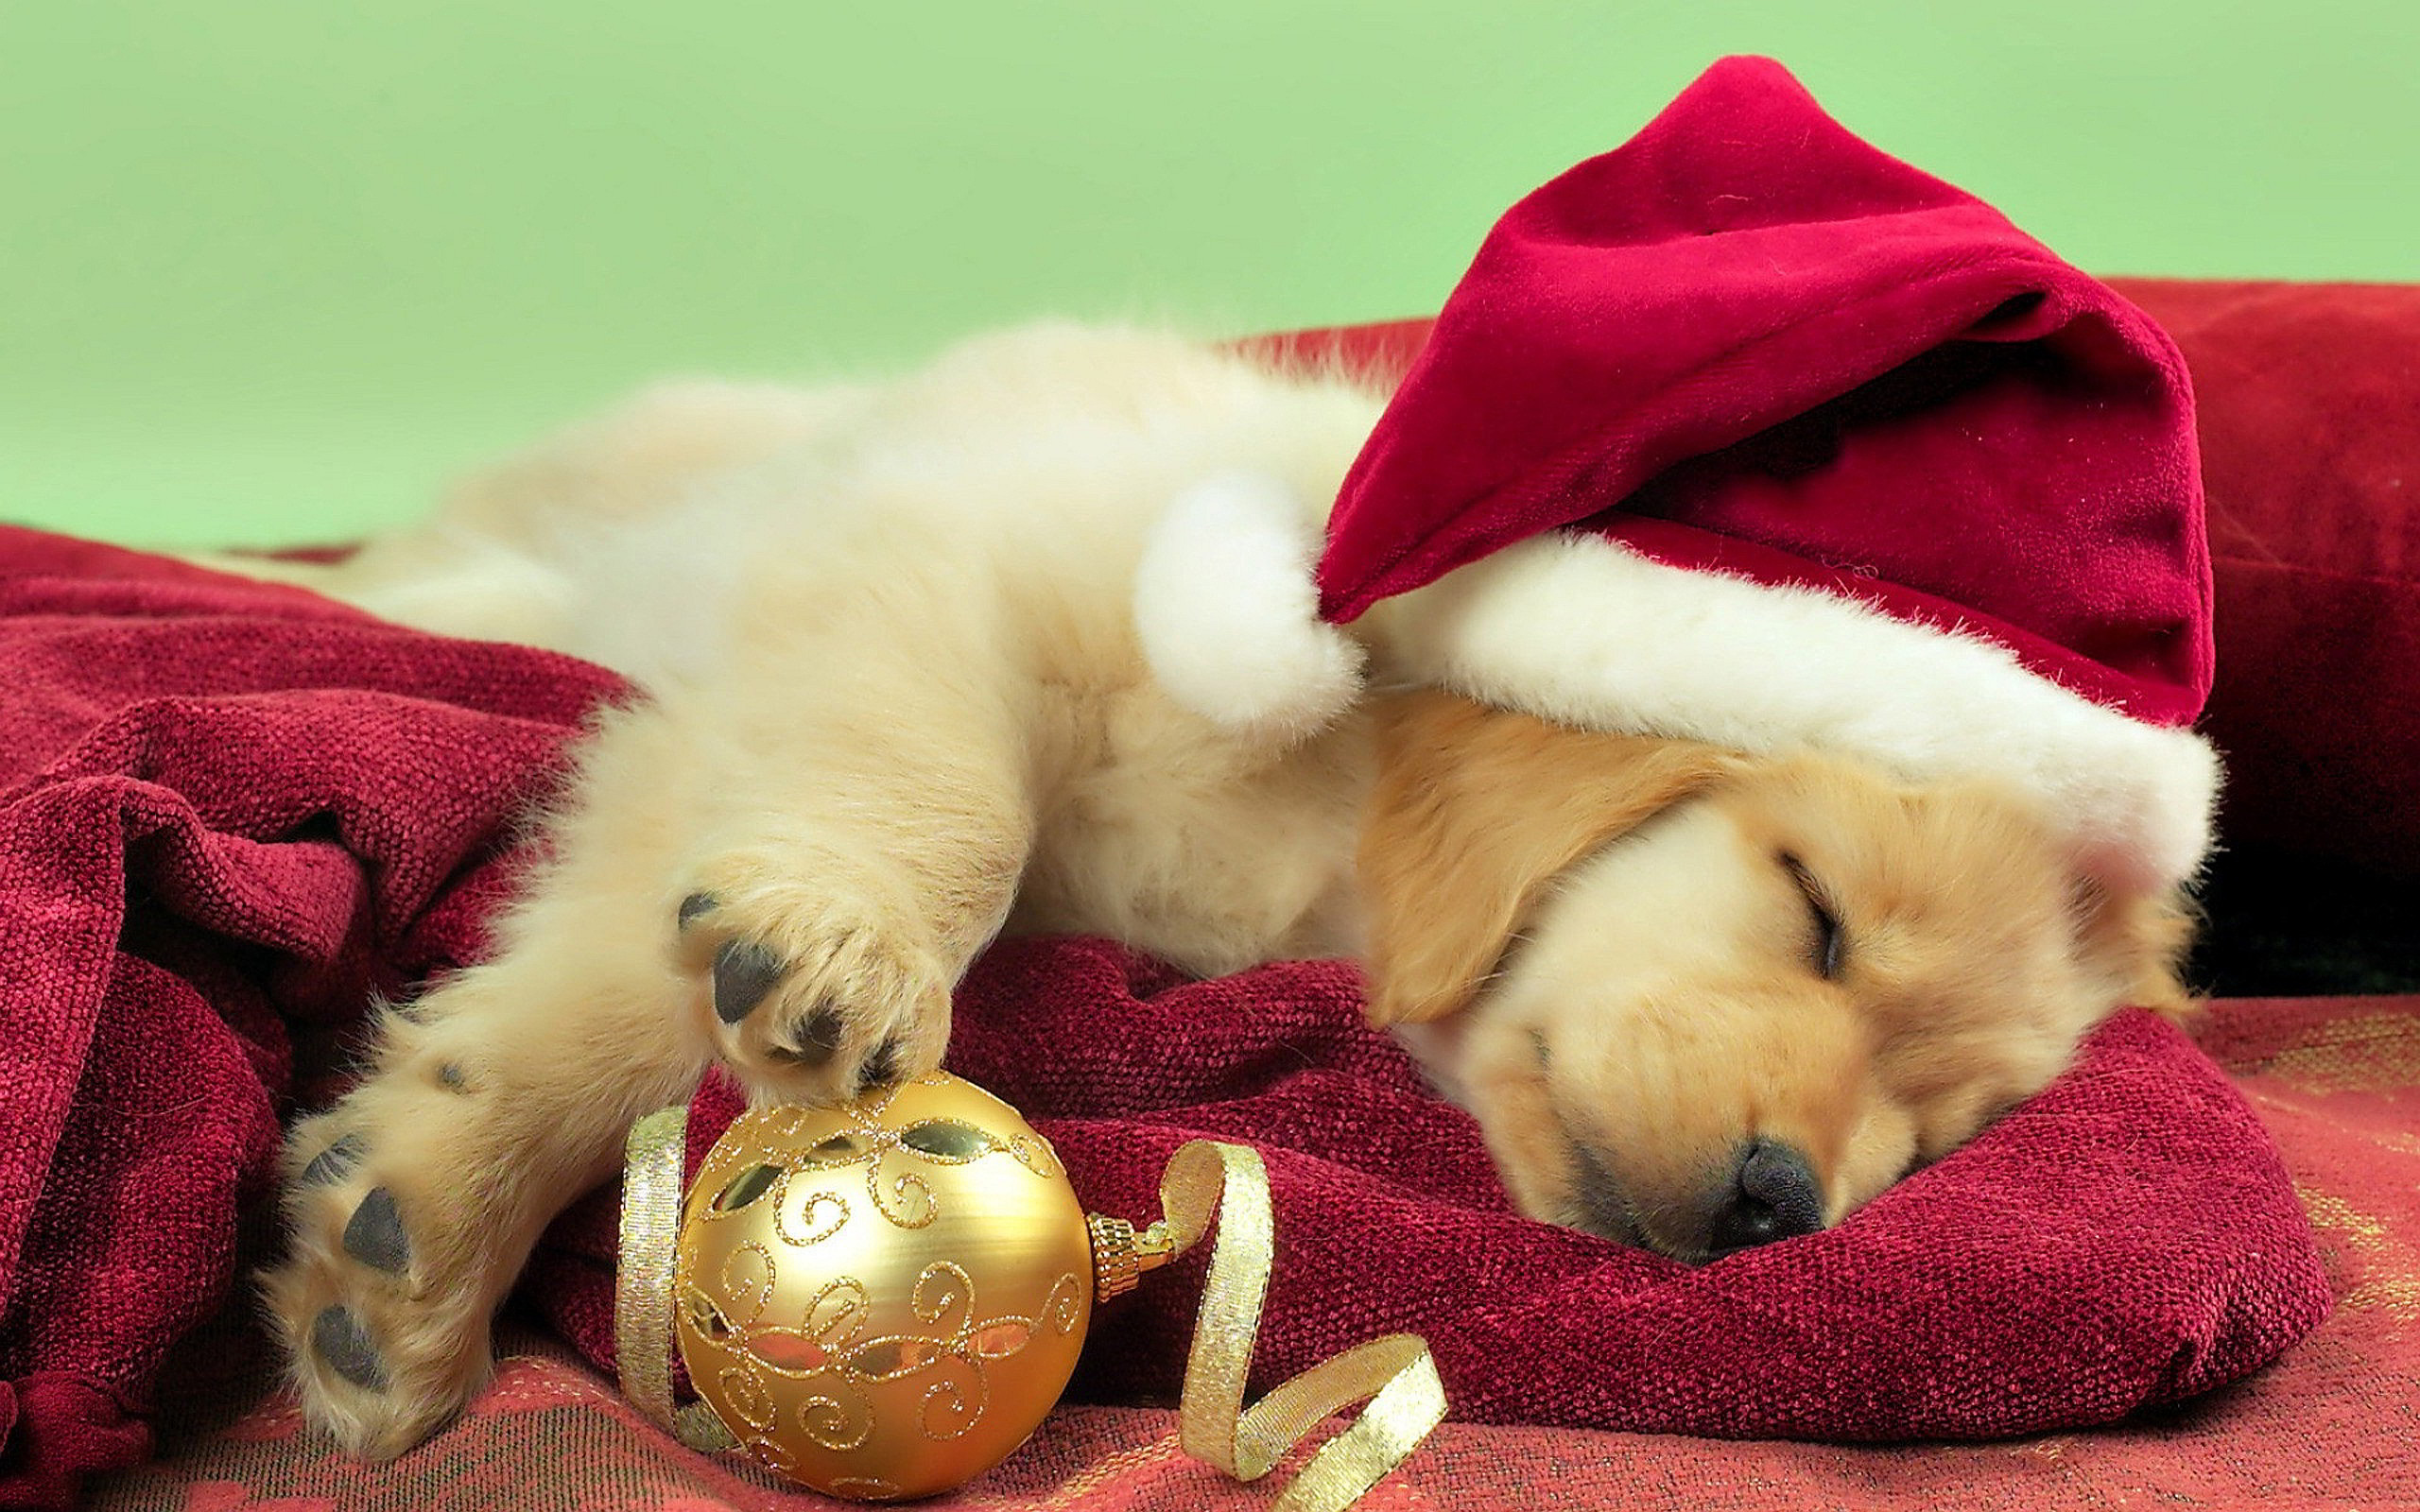 Res: 2560x1600, Christmas Puppy Gift HD Desktop Wallpaper, Background Image